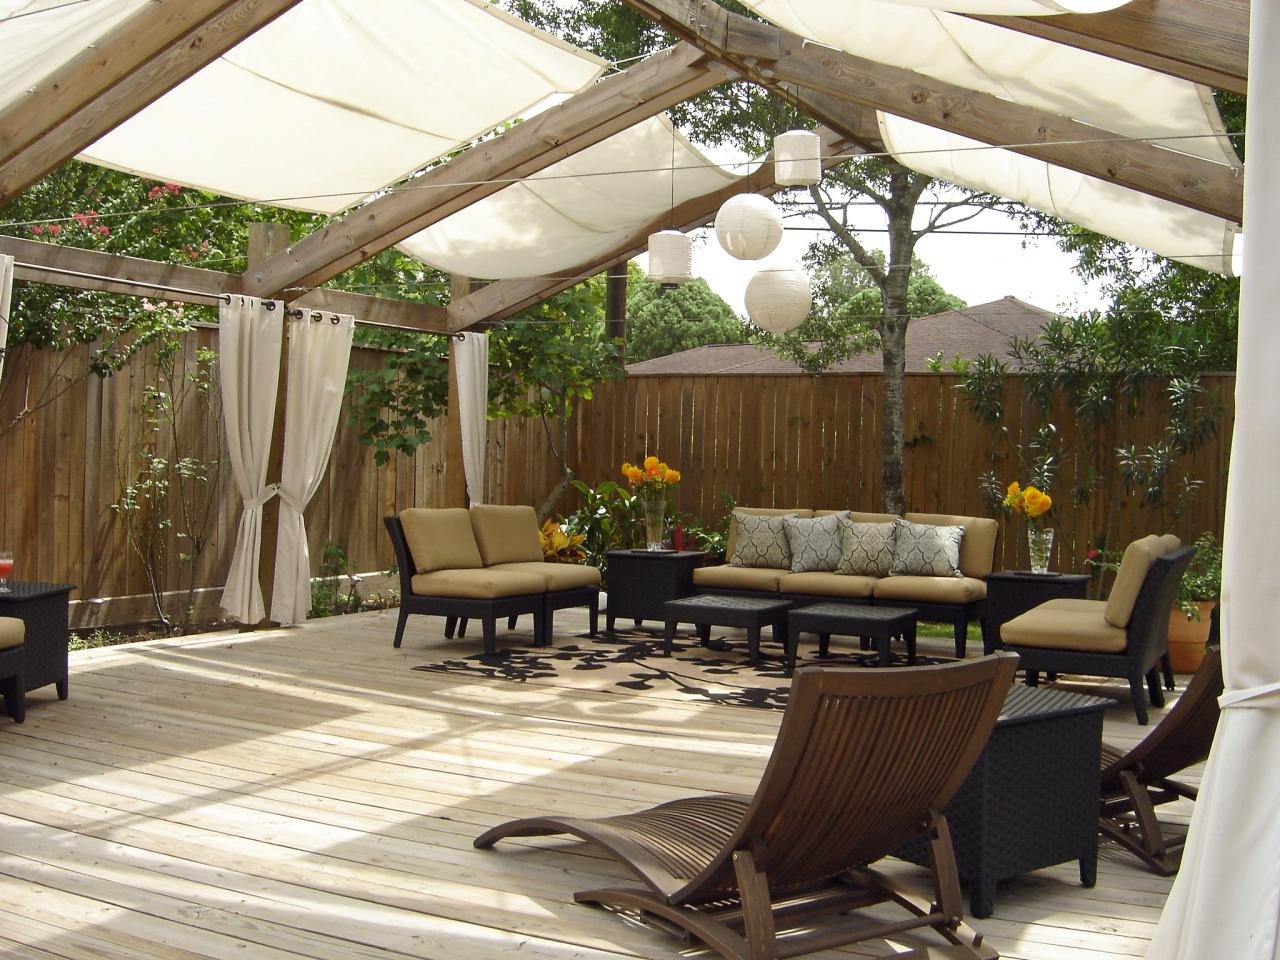 Exterior Outdoor Patio Shades And White Curtains Over On Brown Inside  Dimensions 1280 X 960